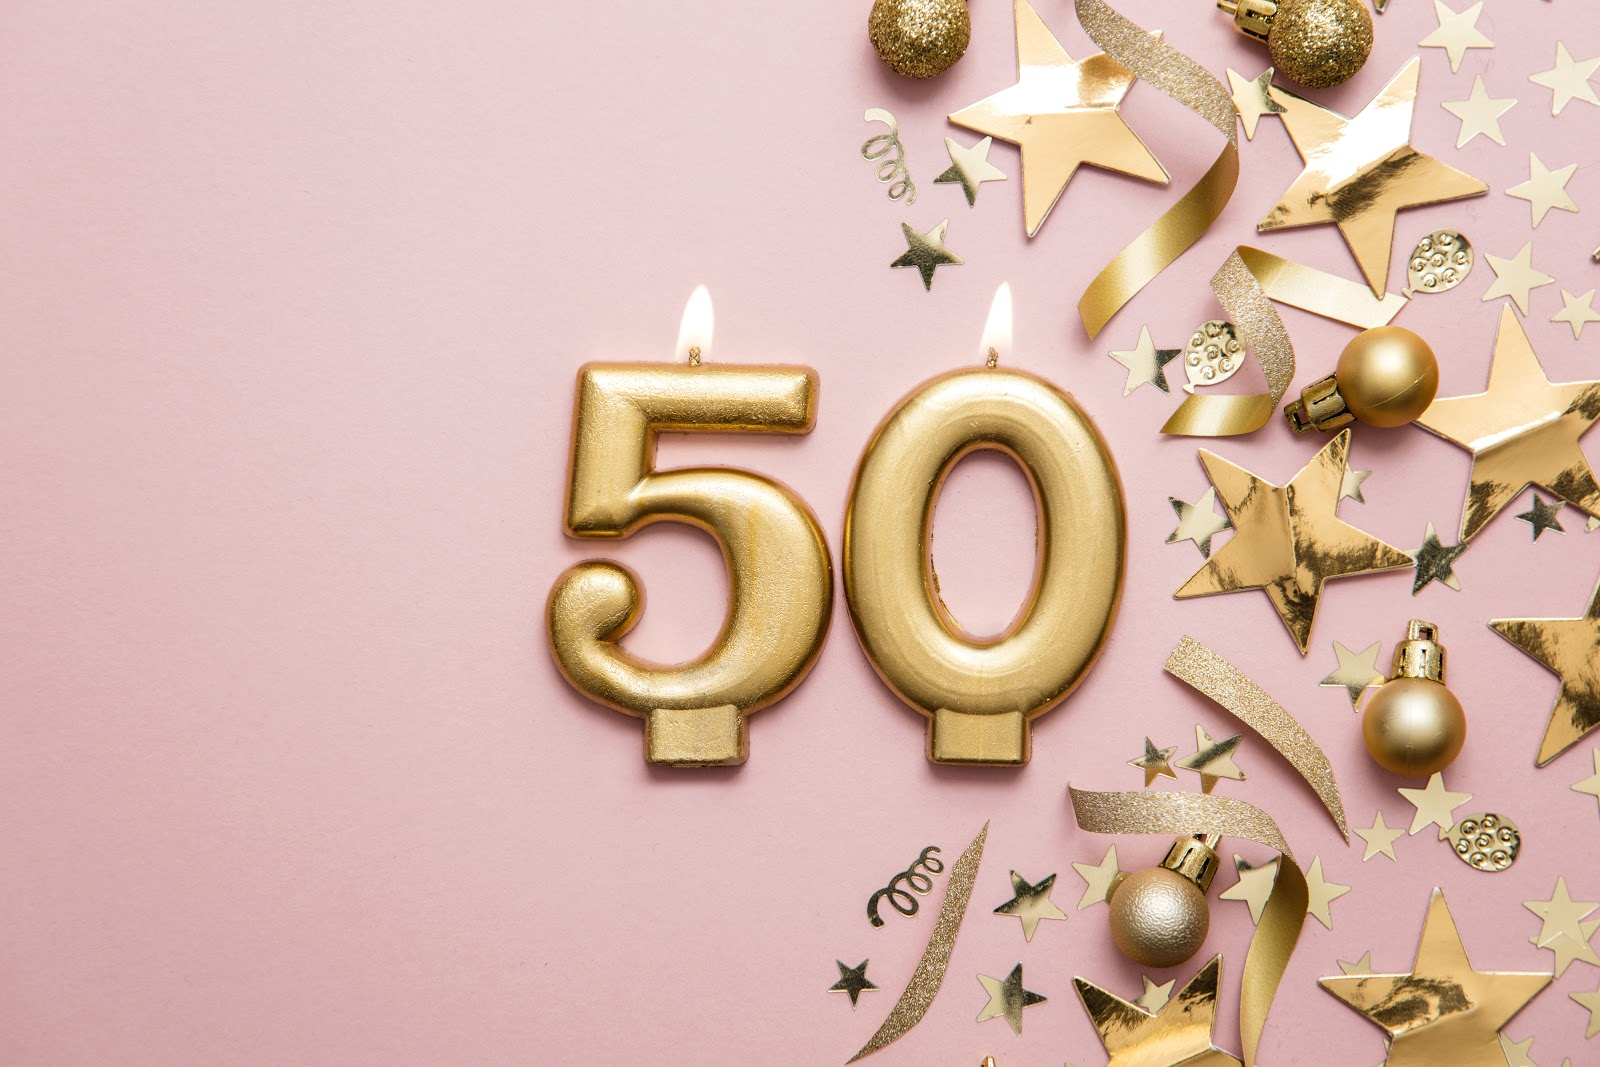 50th birthday party ideas: Number 50 gold candles with gold confetti and baubles on the side against a pink background